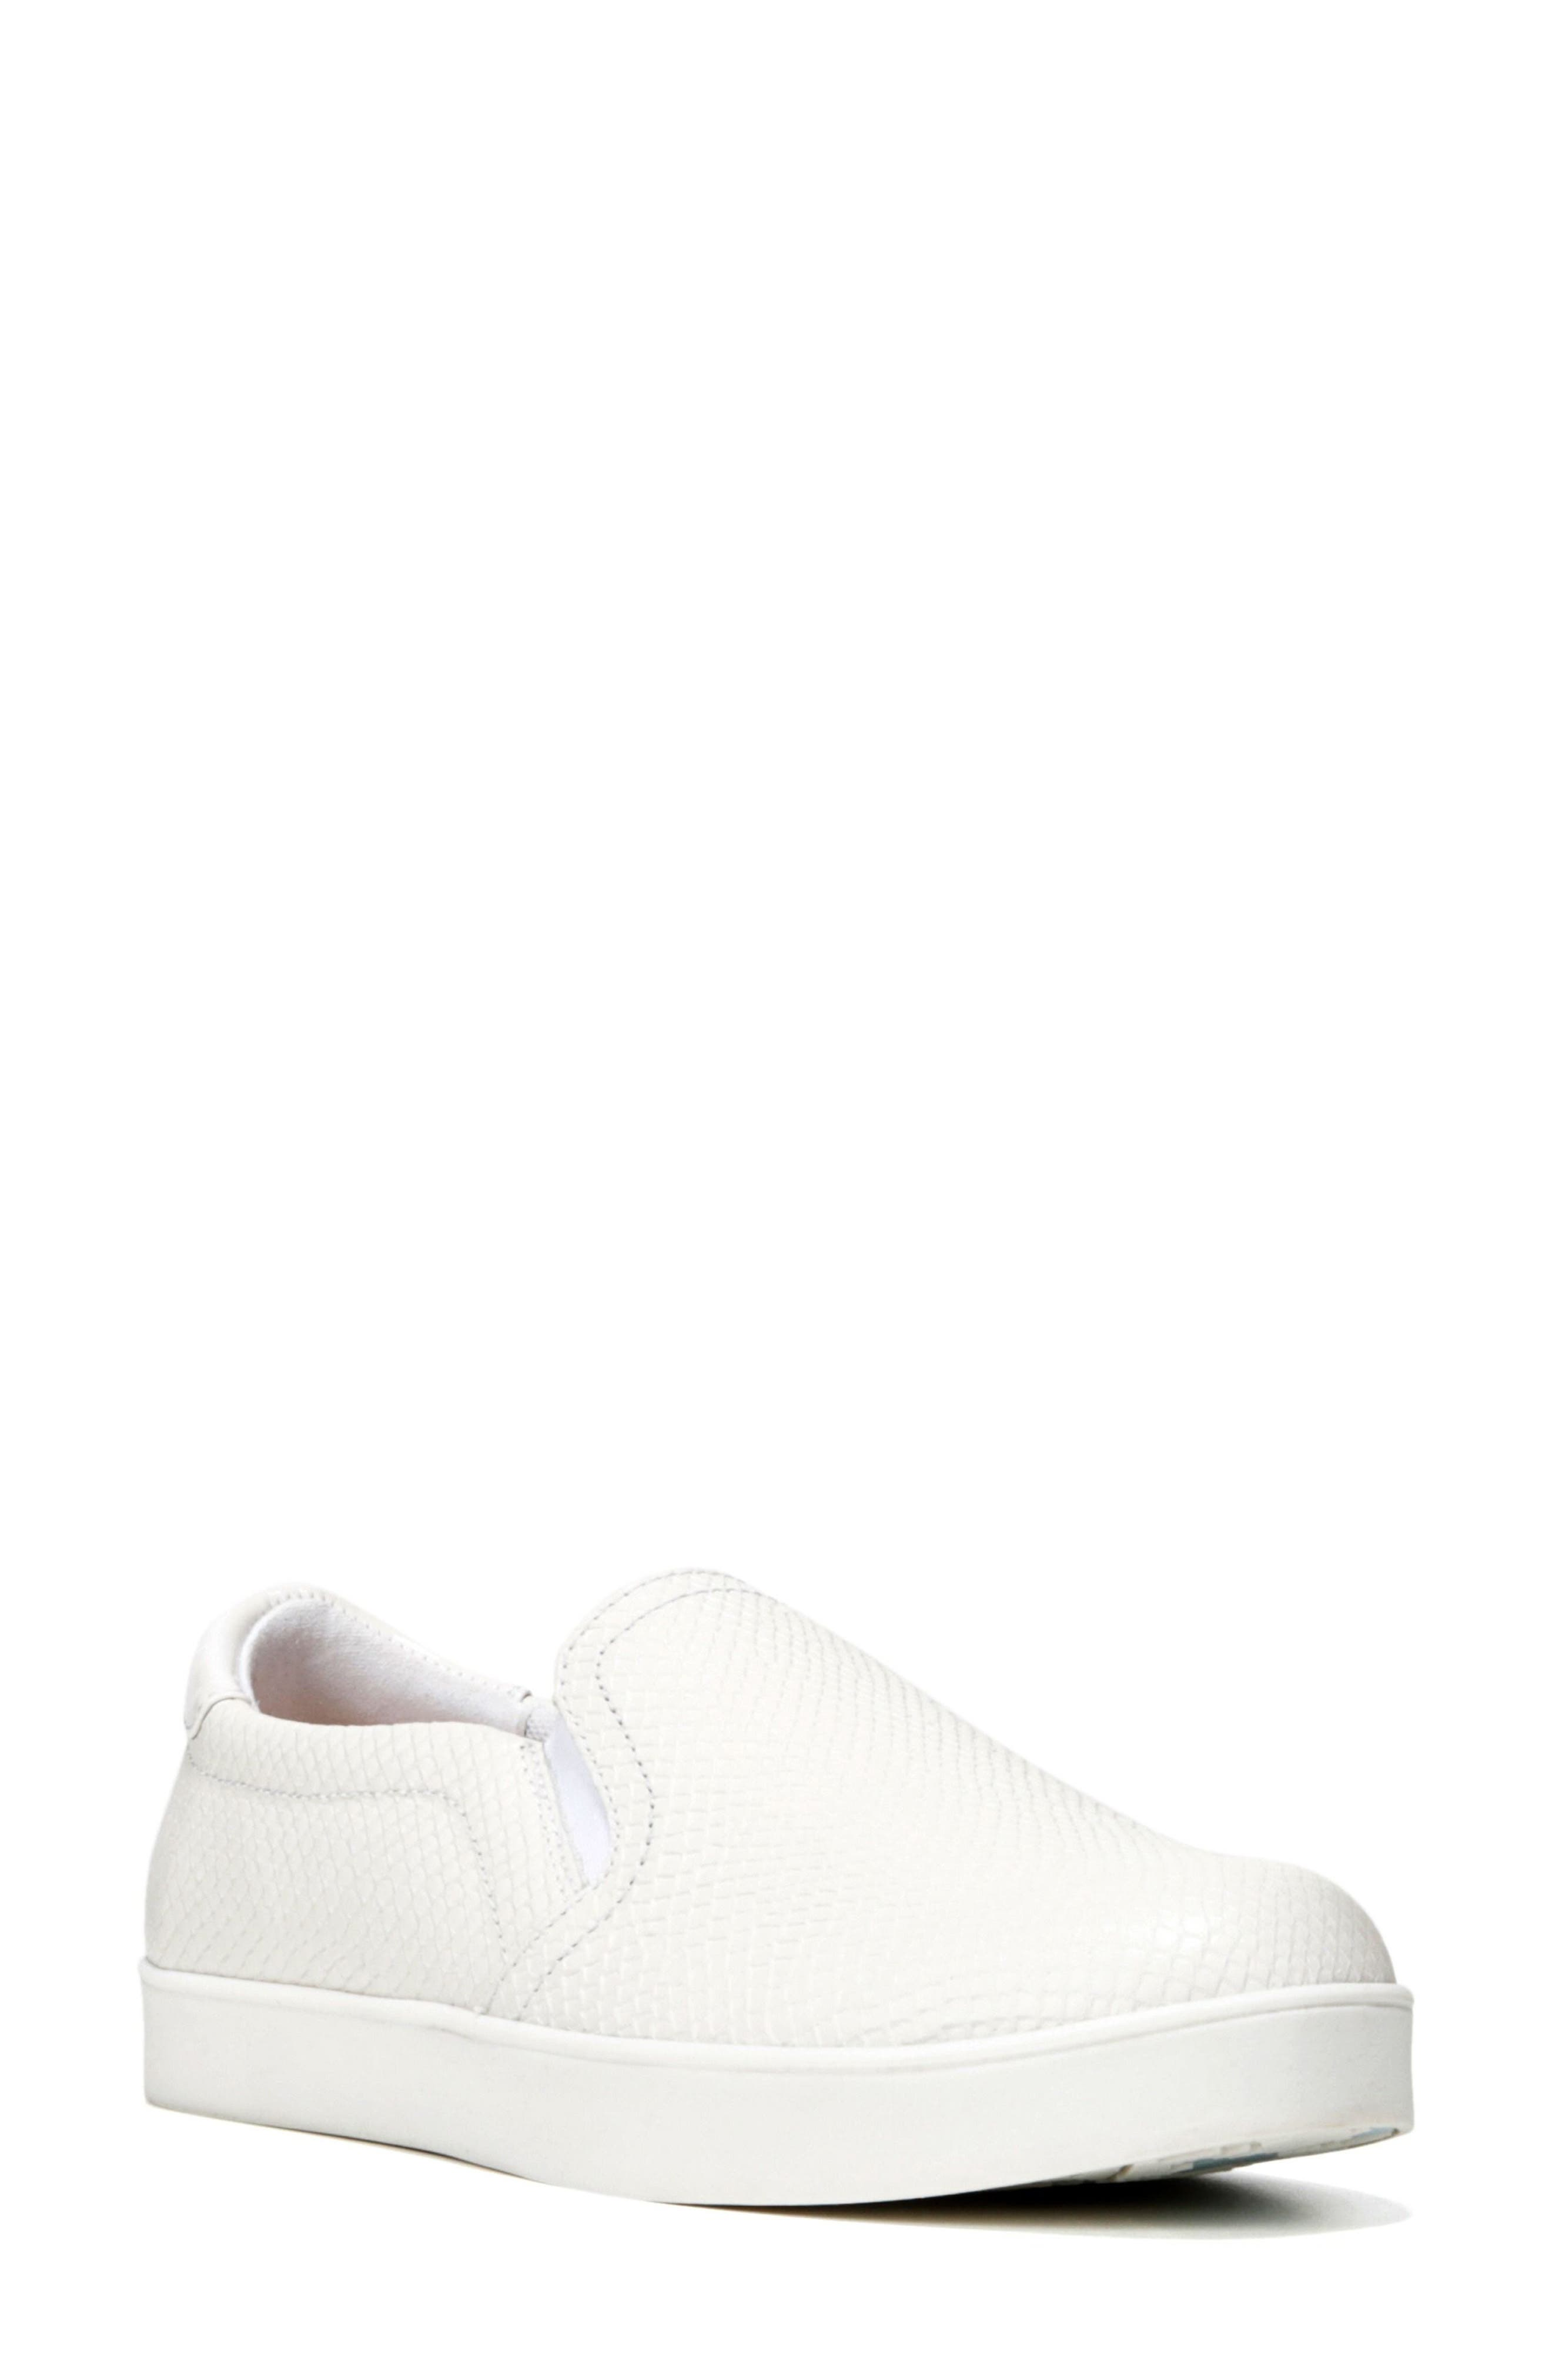 Original Collection 'Scout' Slip On Sneaker,                             Main thumbnail 1, color,                             GARDENIA LEATHER